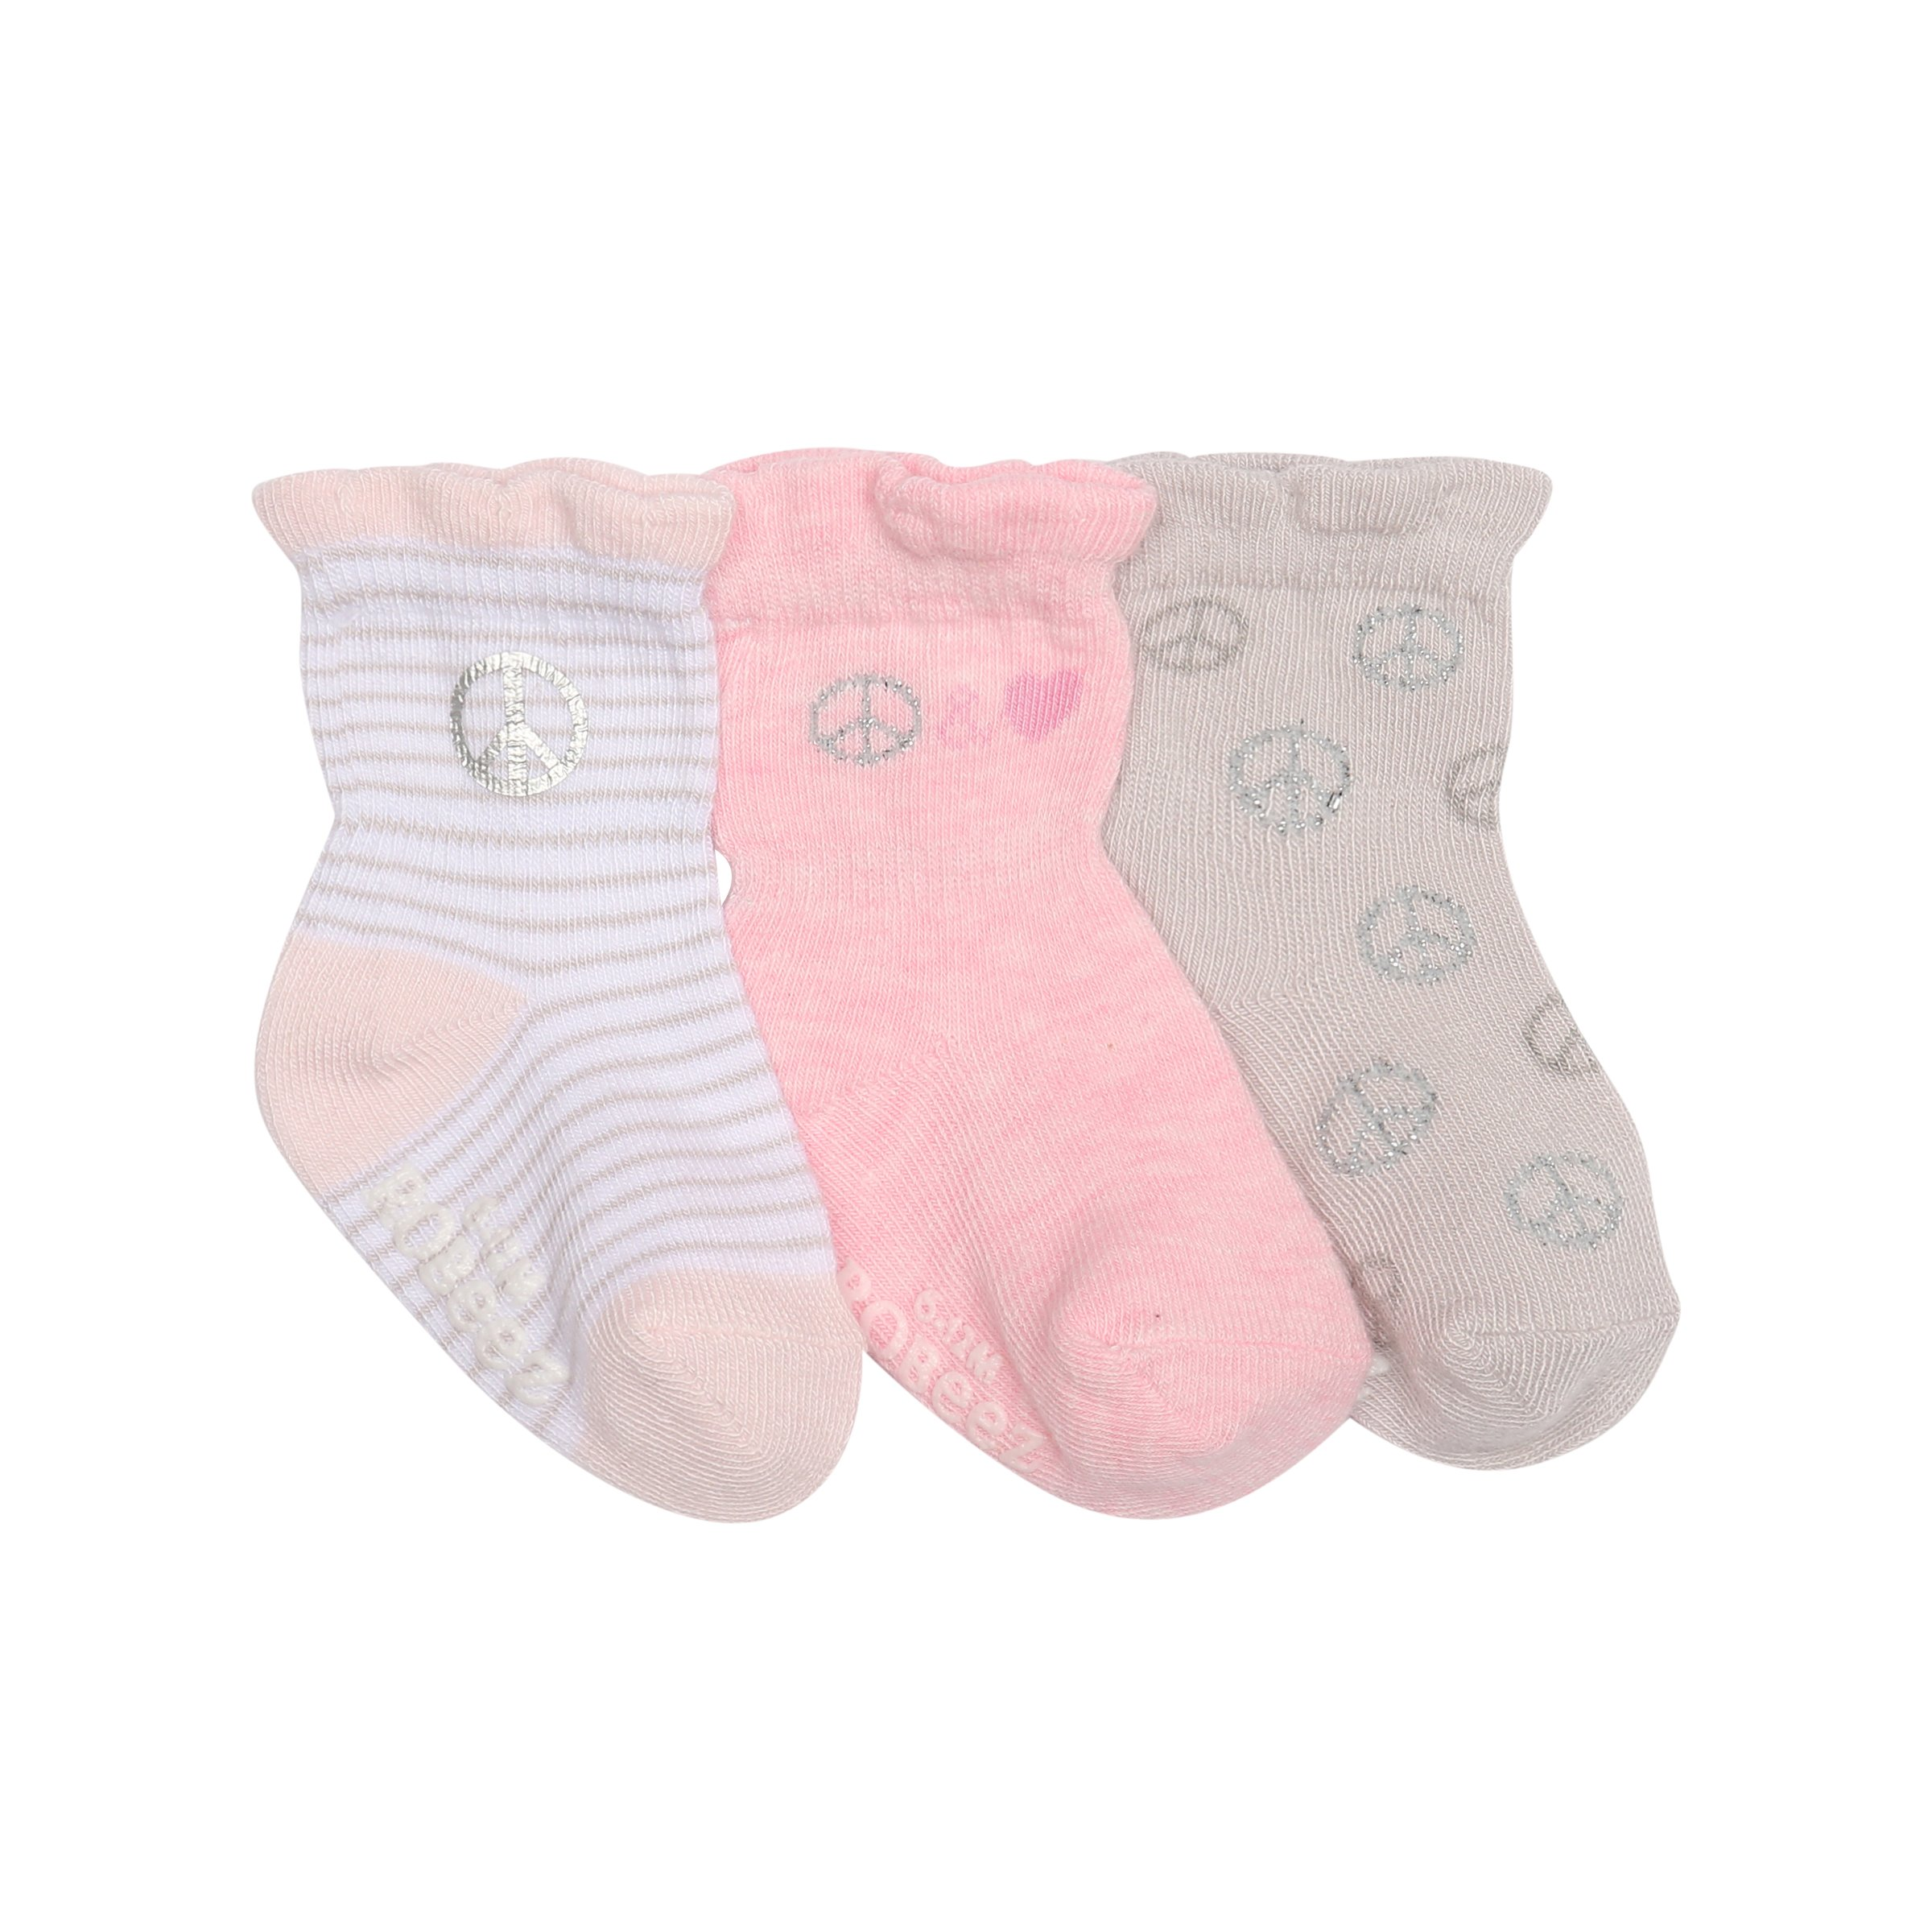 Robeez Baby Girls 3-Pack Socks, Peace/Love/Pink/Grey/White, 12-24 Months